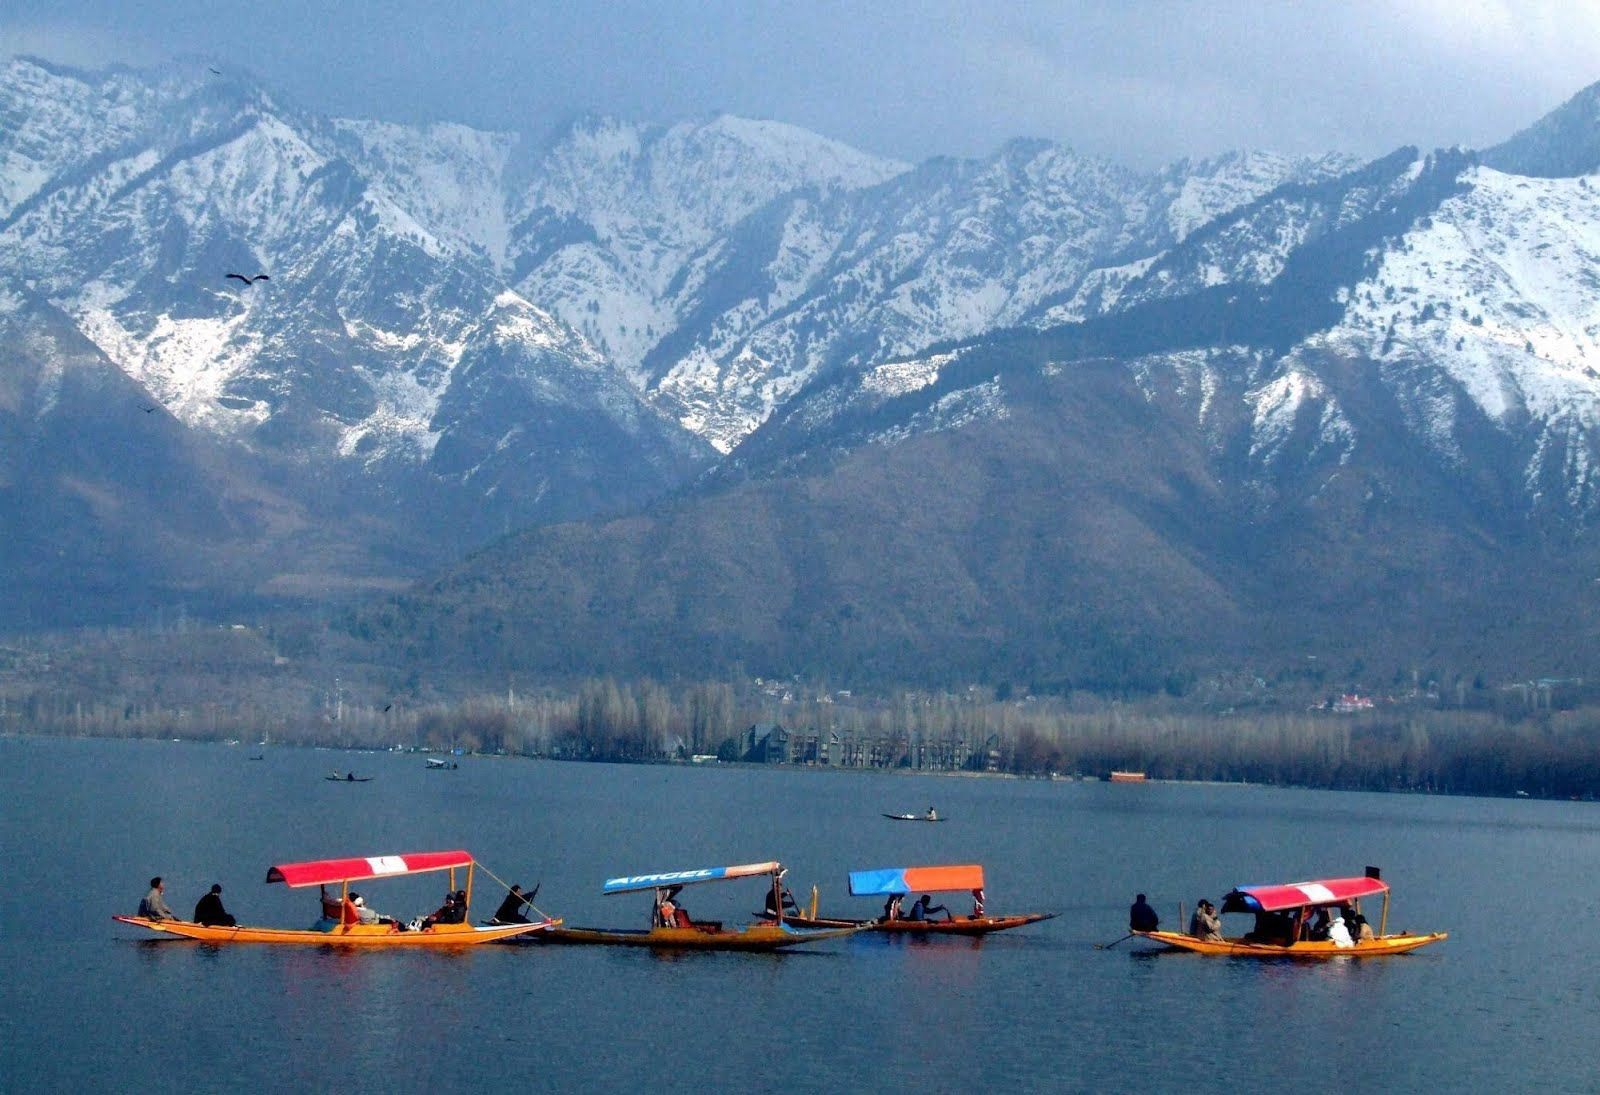 Hd wallpaper kashmir - Dal Lake Hd Wallpapers Very Beautiful And Much Interesting Now You Can Download Free Best